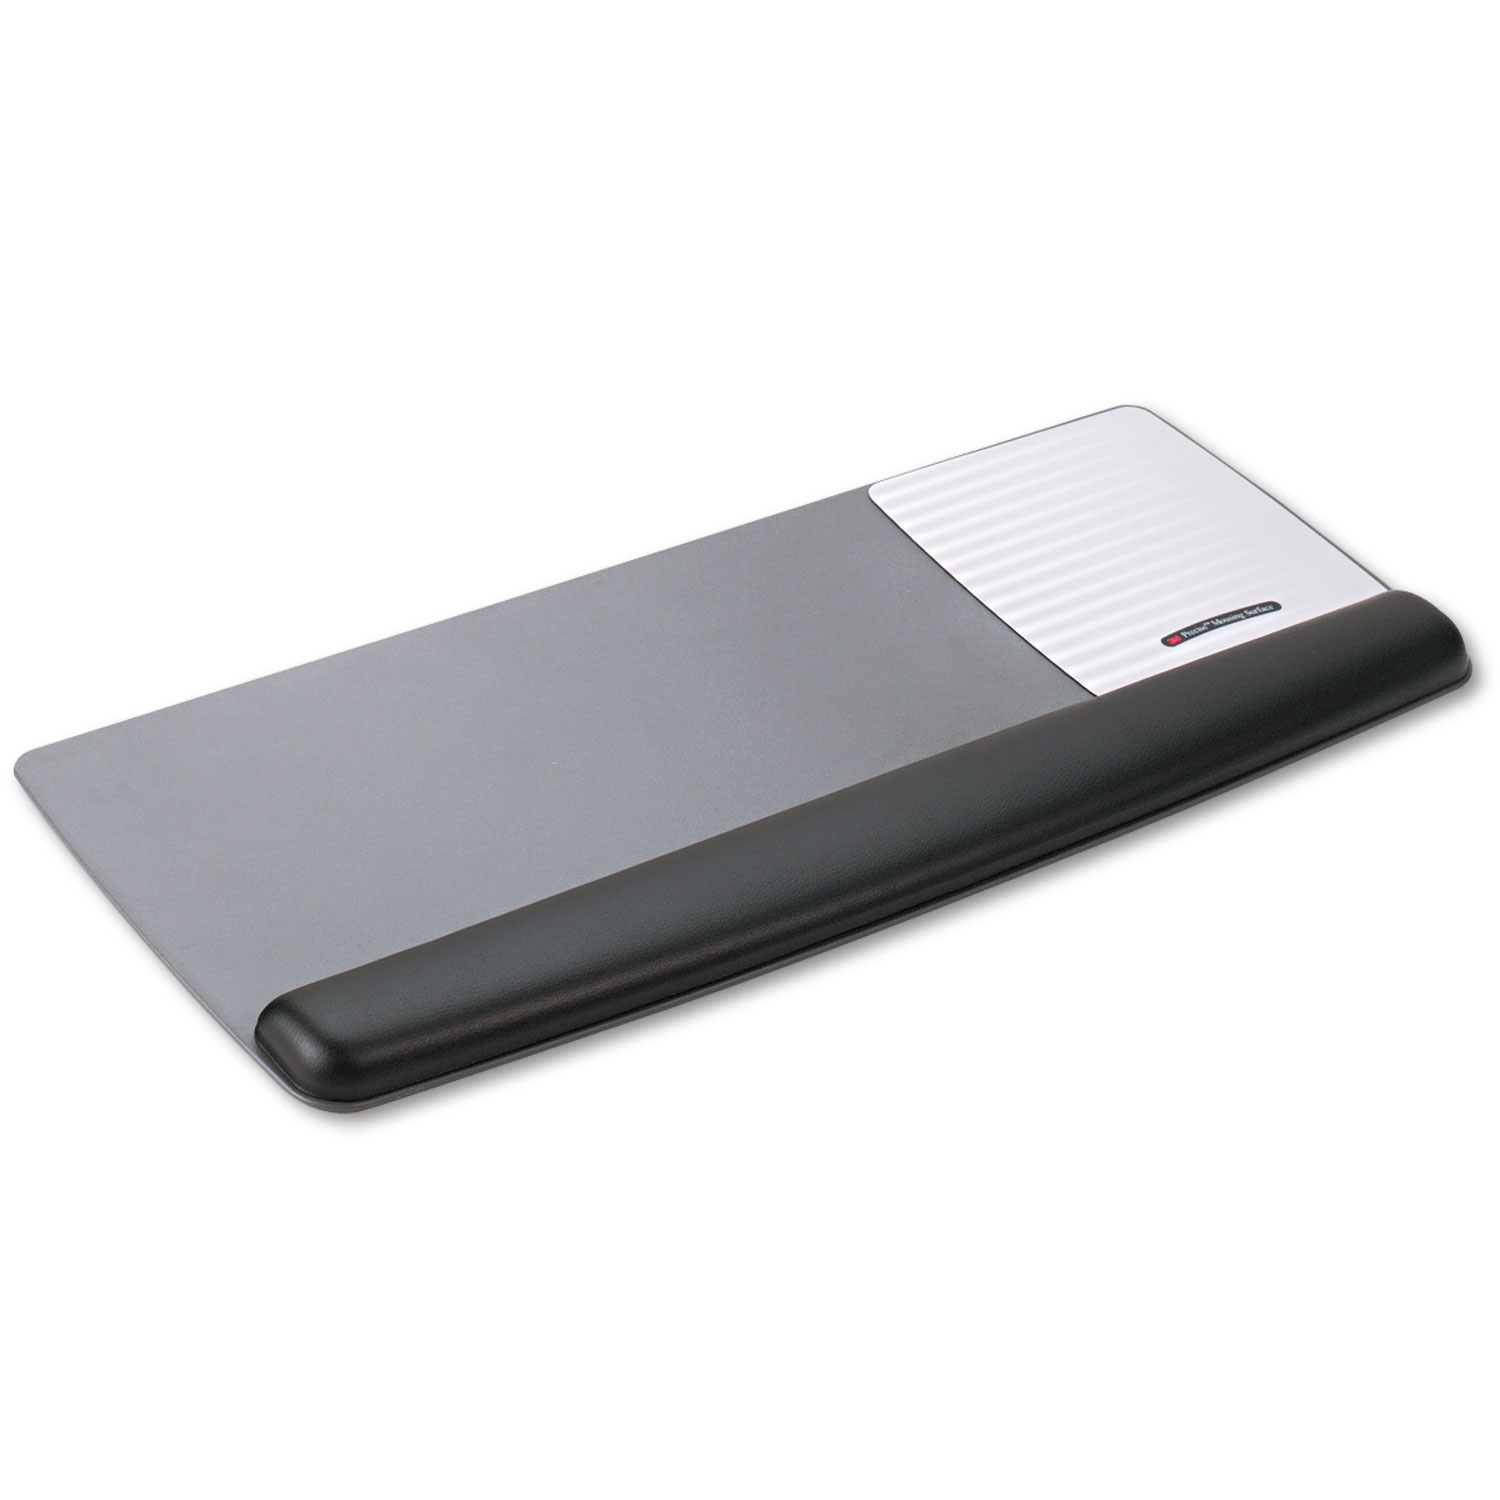 Antimicrobial Gel Mouse Pad/Keyboard Wrist Rest Platform, Black/Silver